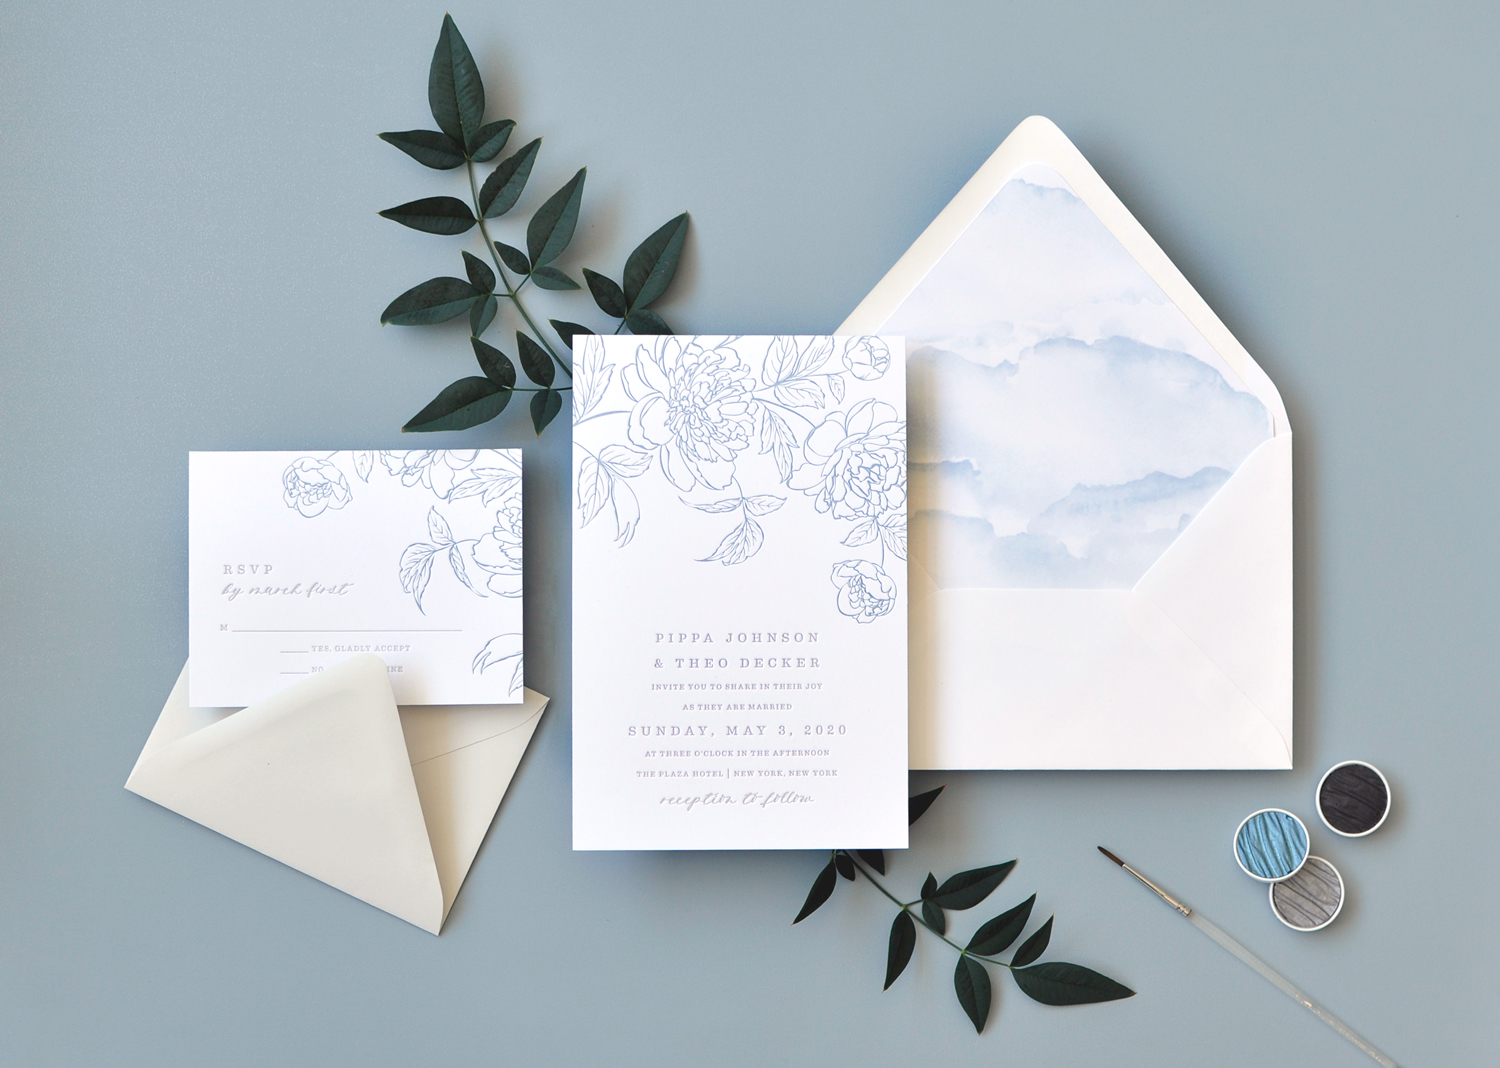 2-color letterpress wedding invitation features a beautiful floral sketch on the top, and contemporary text setting.